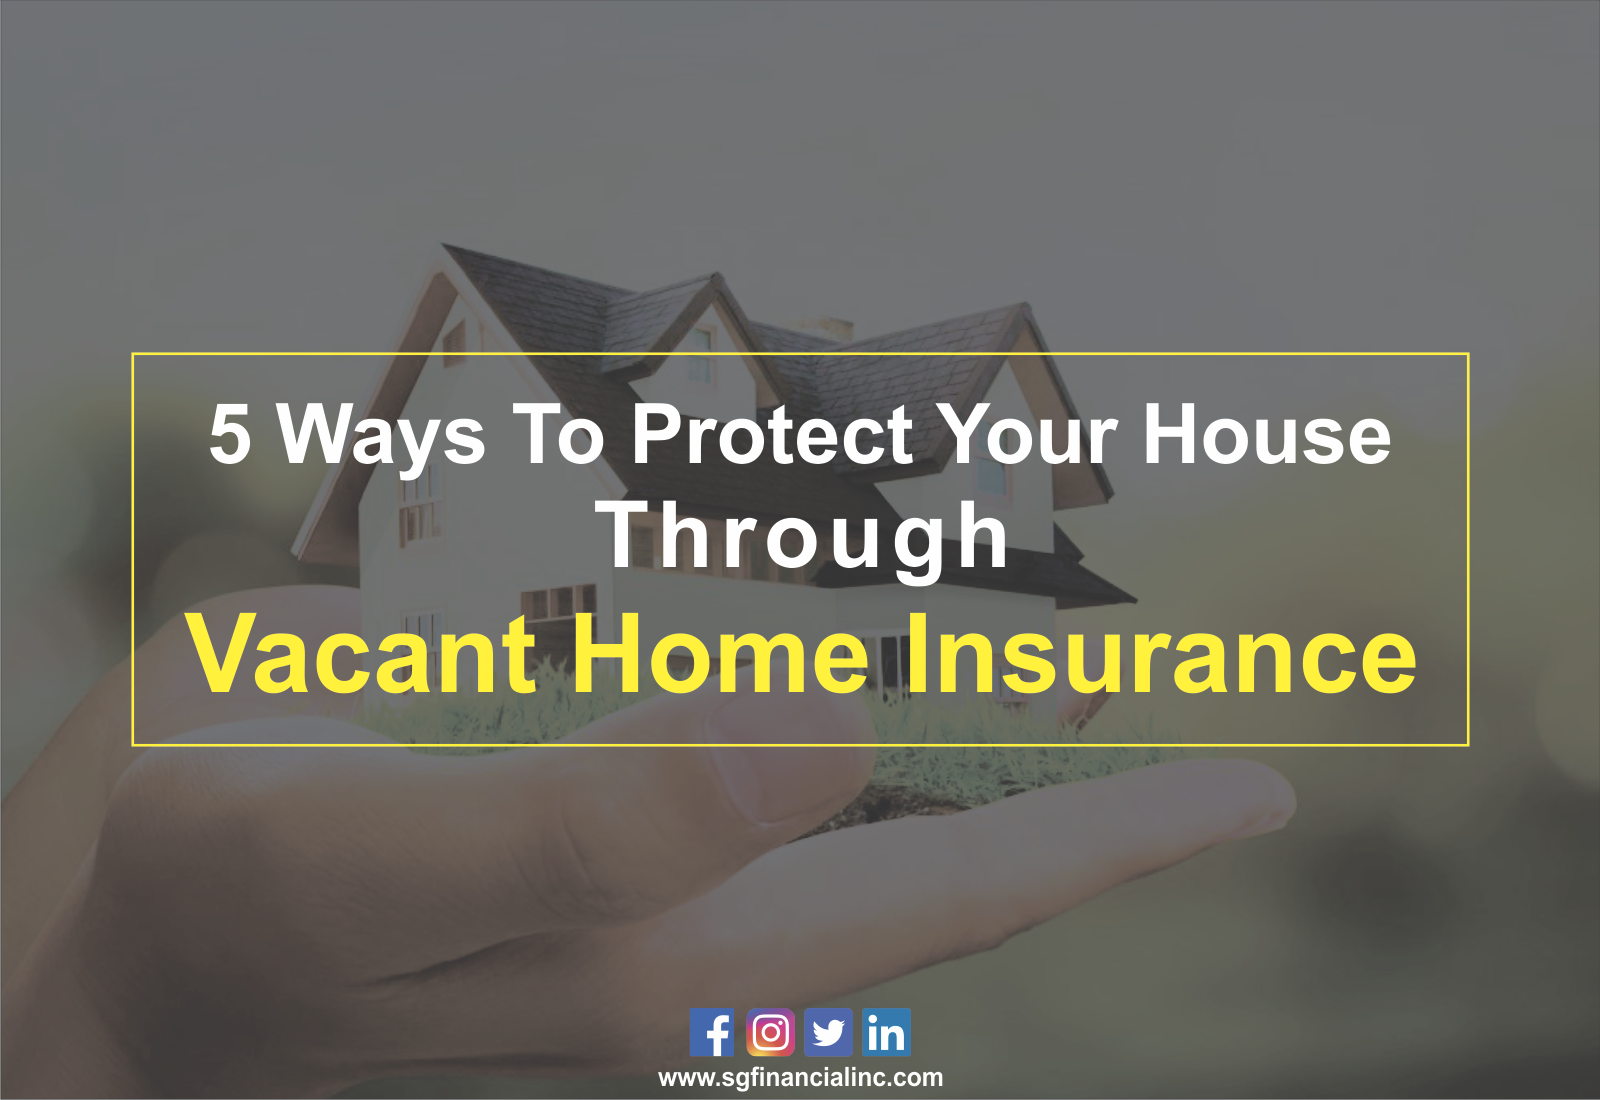 5 Ways to Protect your House Through Vacant Home Insurance